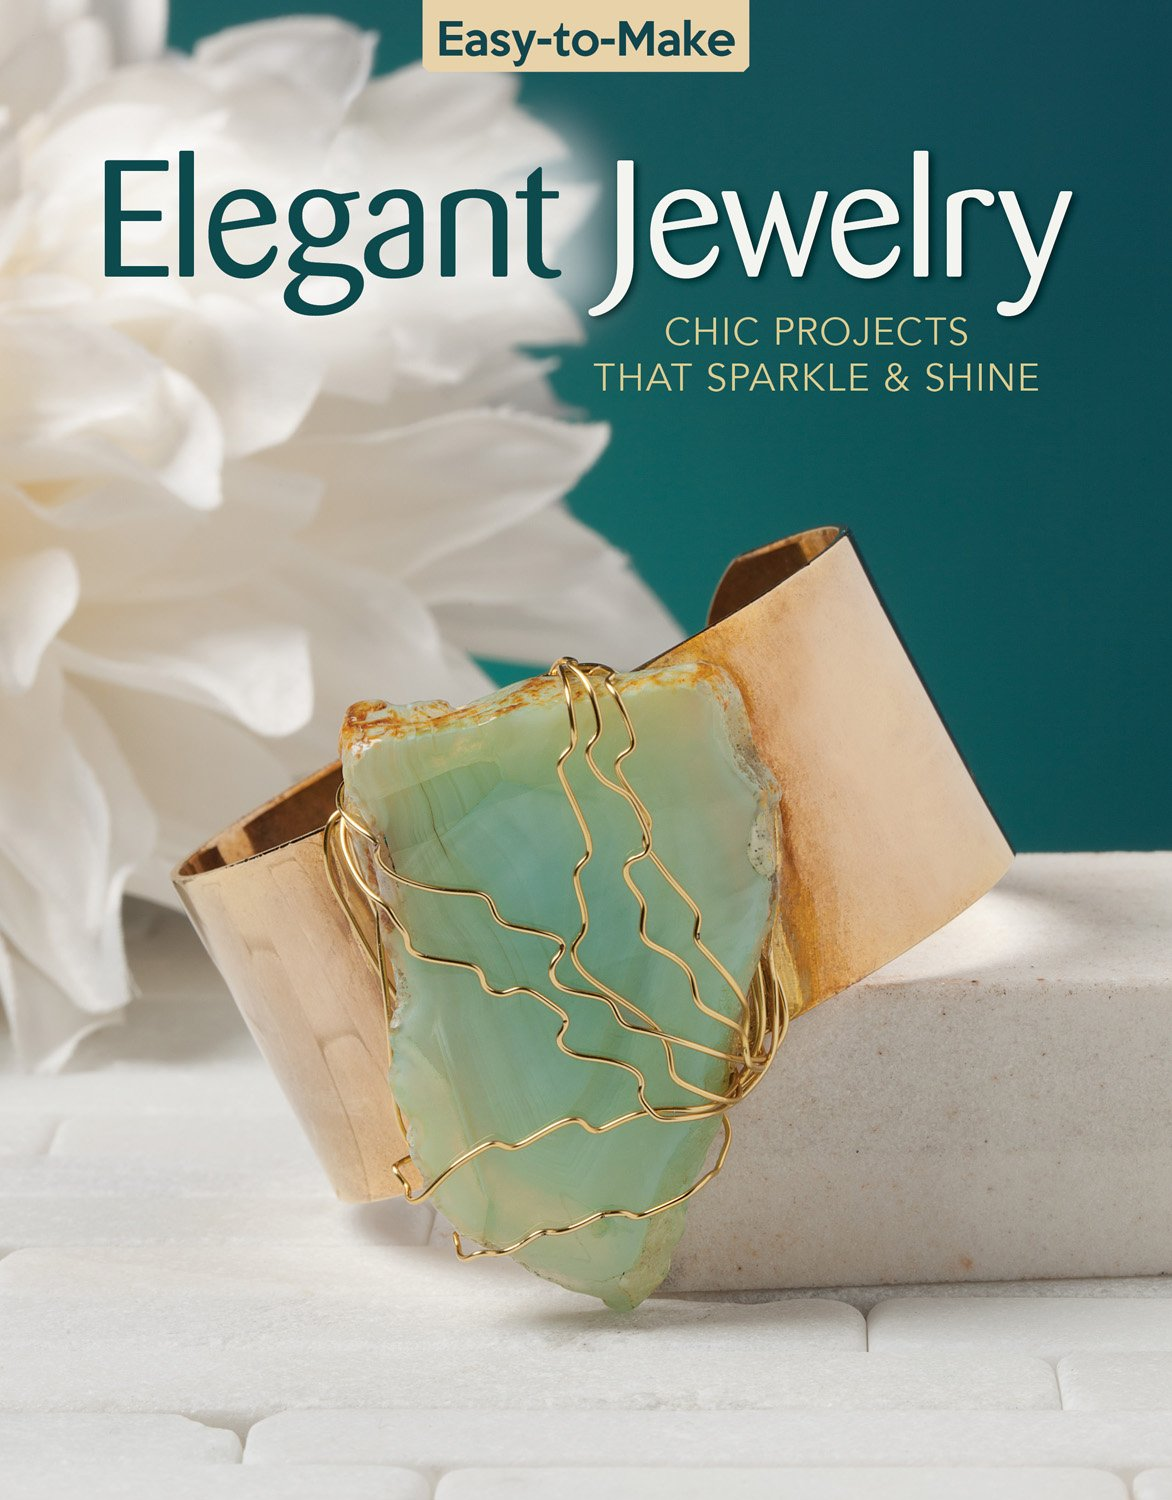 Easy-to-Make Elegant Jewelry Chic Projects that Sparkle & Shine